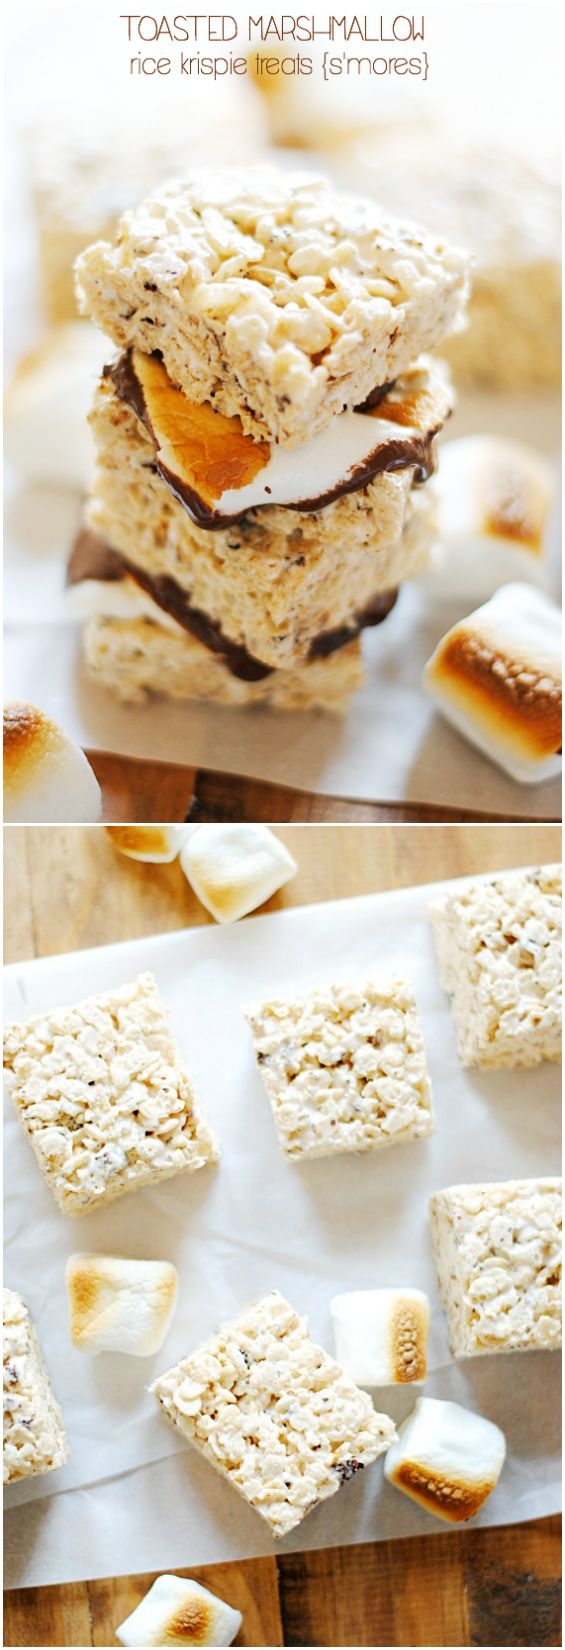 105 best recipes rice krispies treats images on pinterest rice toasted marshmallow rice krispie treats and smores ccuart Choice Image